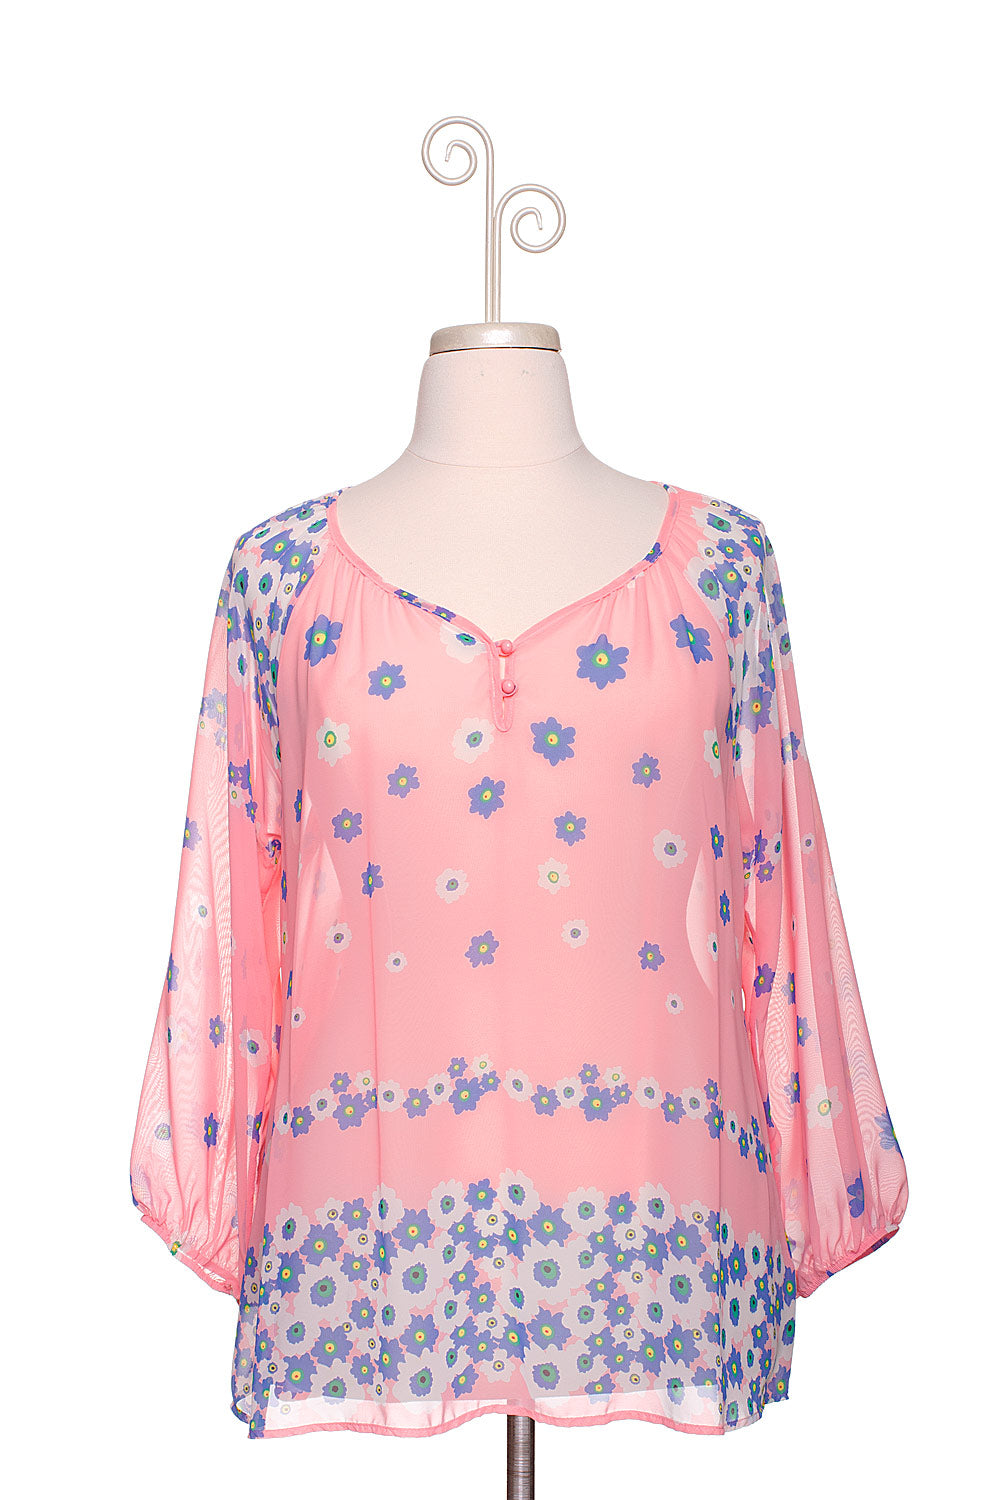 Type 1 Flirty Flowers Top